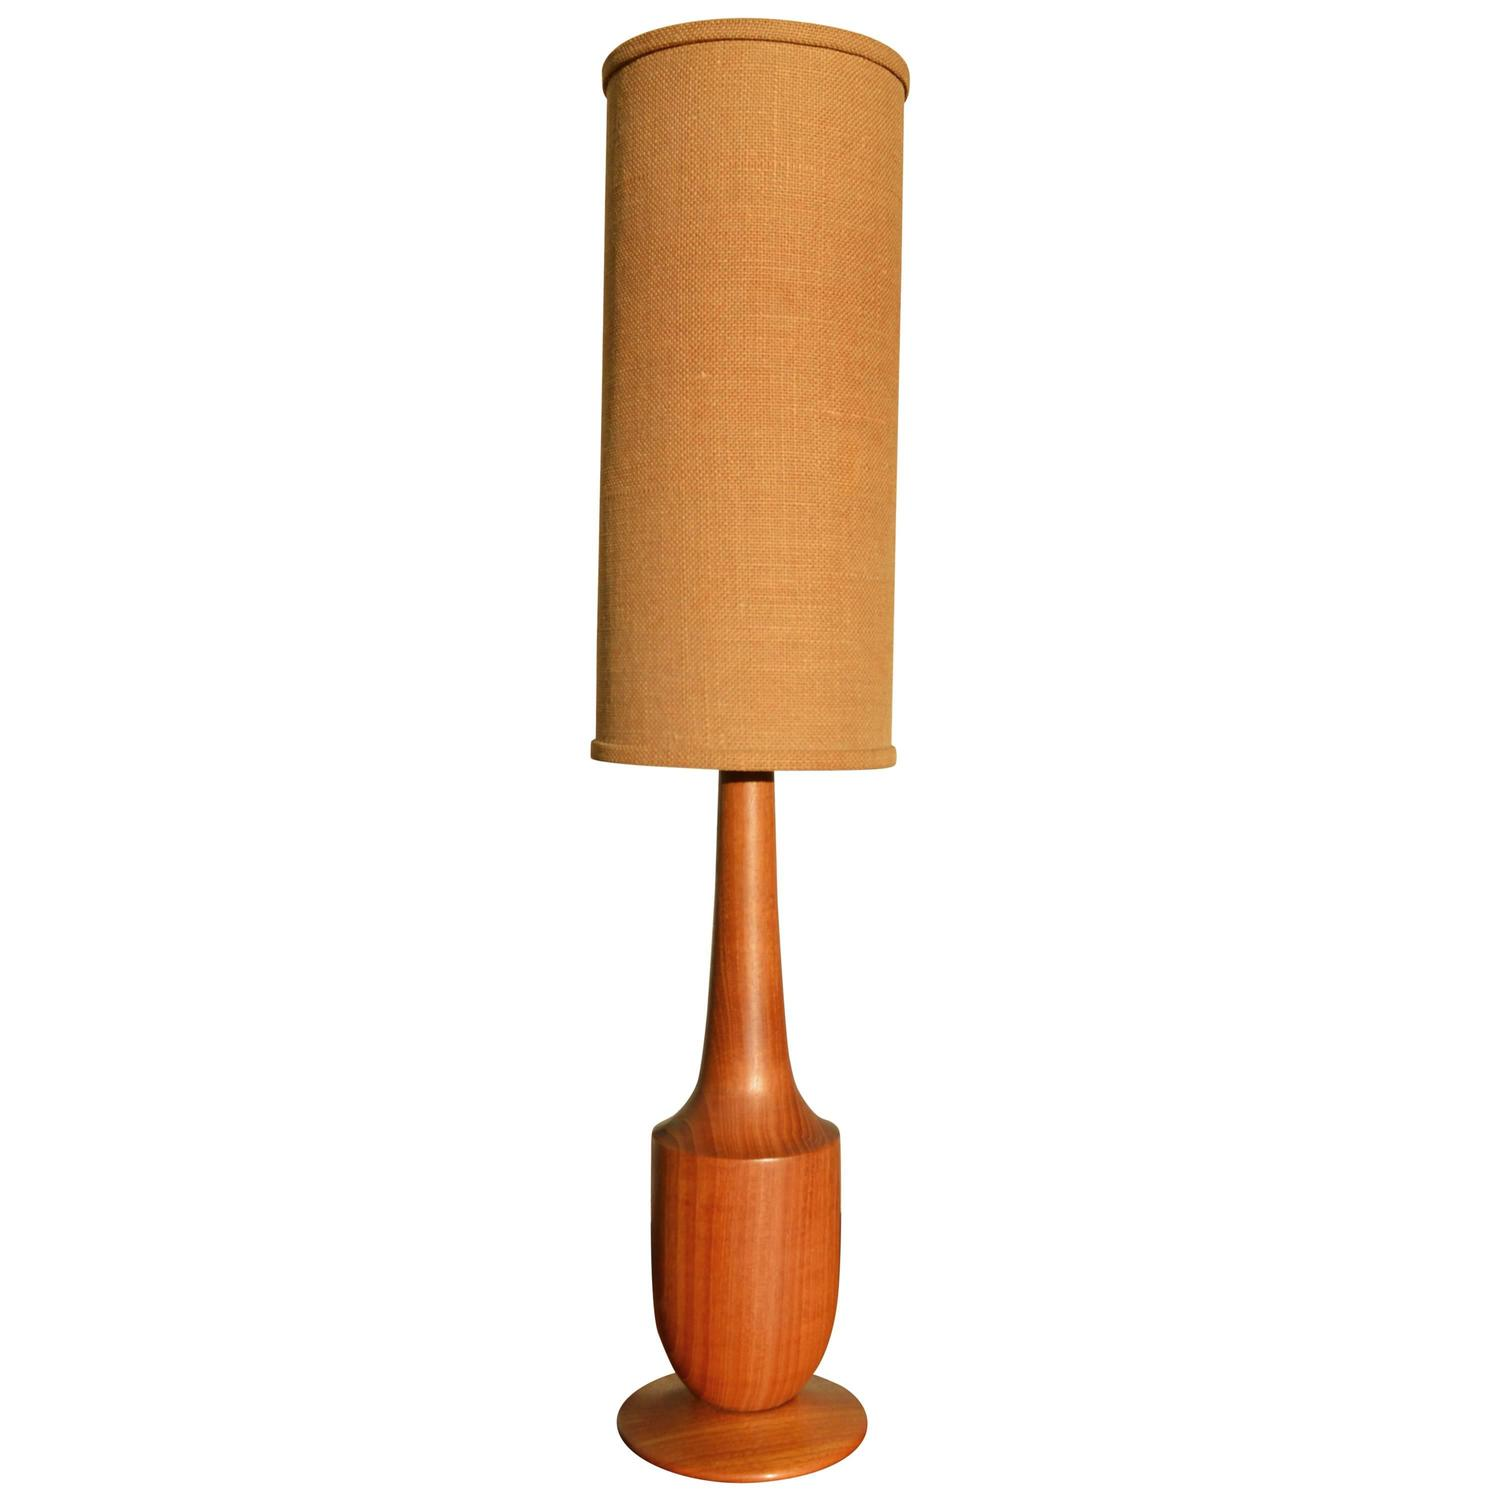 solid teak sculptural tall lamp with jute cylinder shade at 1stdibs. Black Bedroom Furniture Sets. Home Design Ideas